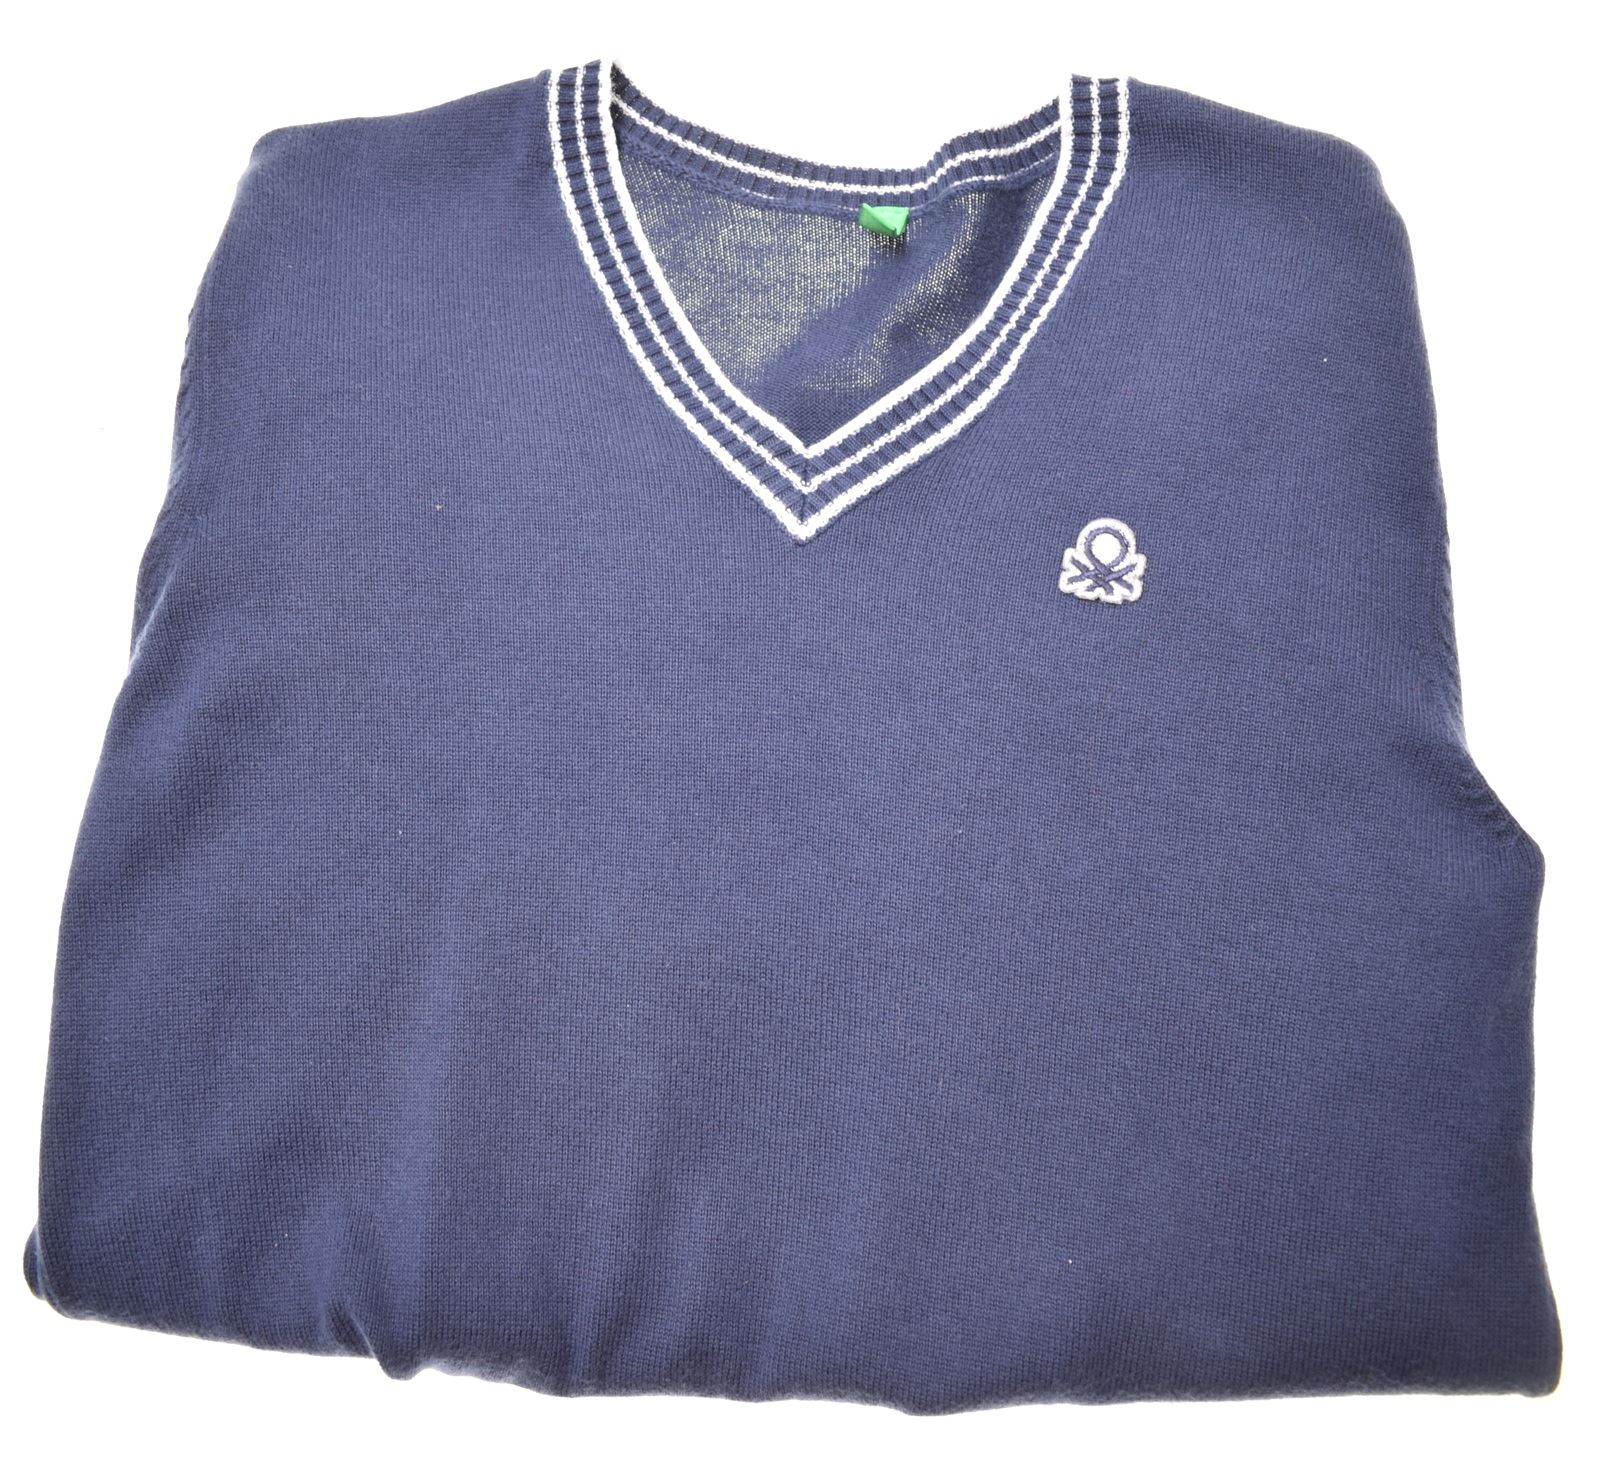 Details about UNITED COLORS OF BENETTON Boys V Neck Jumper Sweater 11 12 Years Blue Cotton